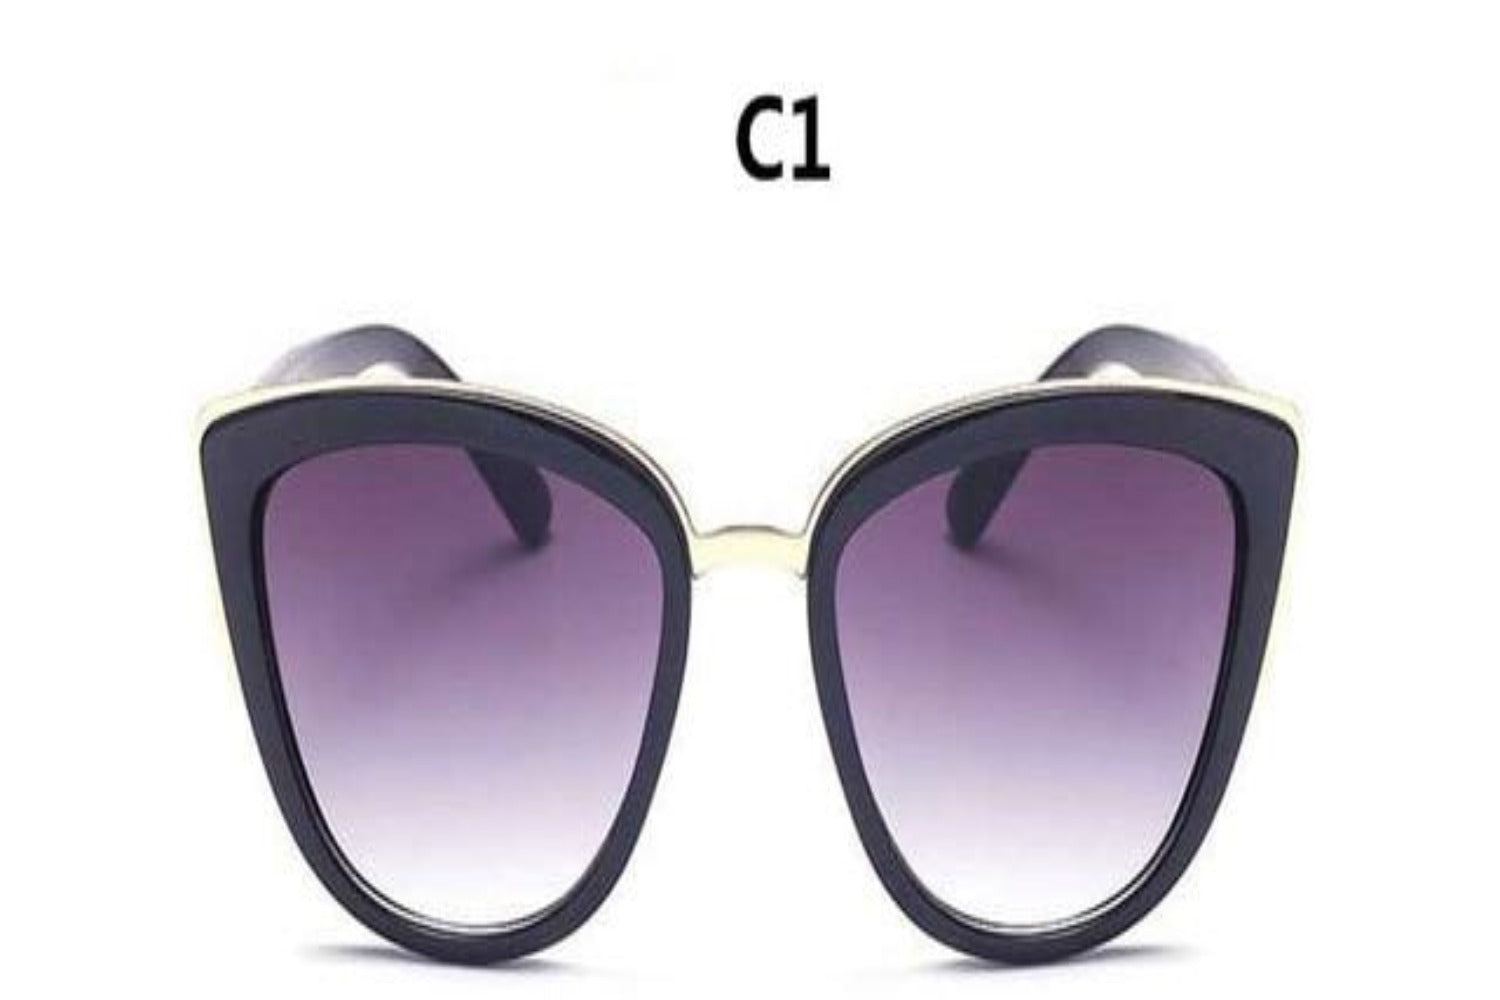 Ladies Vintage Cat Eye Big Frame Sunglasses-Ladies Sunglasses-C1-Blk Frame-Product Details: Cute Eye wear Vintage Sexy Ladies Cat Eye Sunglasses For Women Brand New Fashion Sun Glasses Style: Cat Eye Lenses Material: TAC Lenses Optical Attribute: Mirror, UV400 Frame Material: Plastic Dimensions: Lens Width: 53 mm Lens Height: 46 mm-Keyomi-Sook